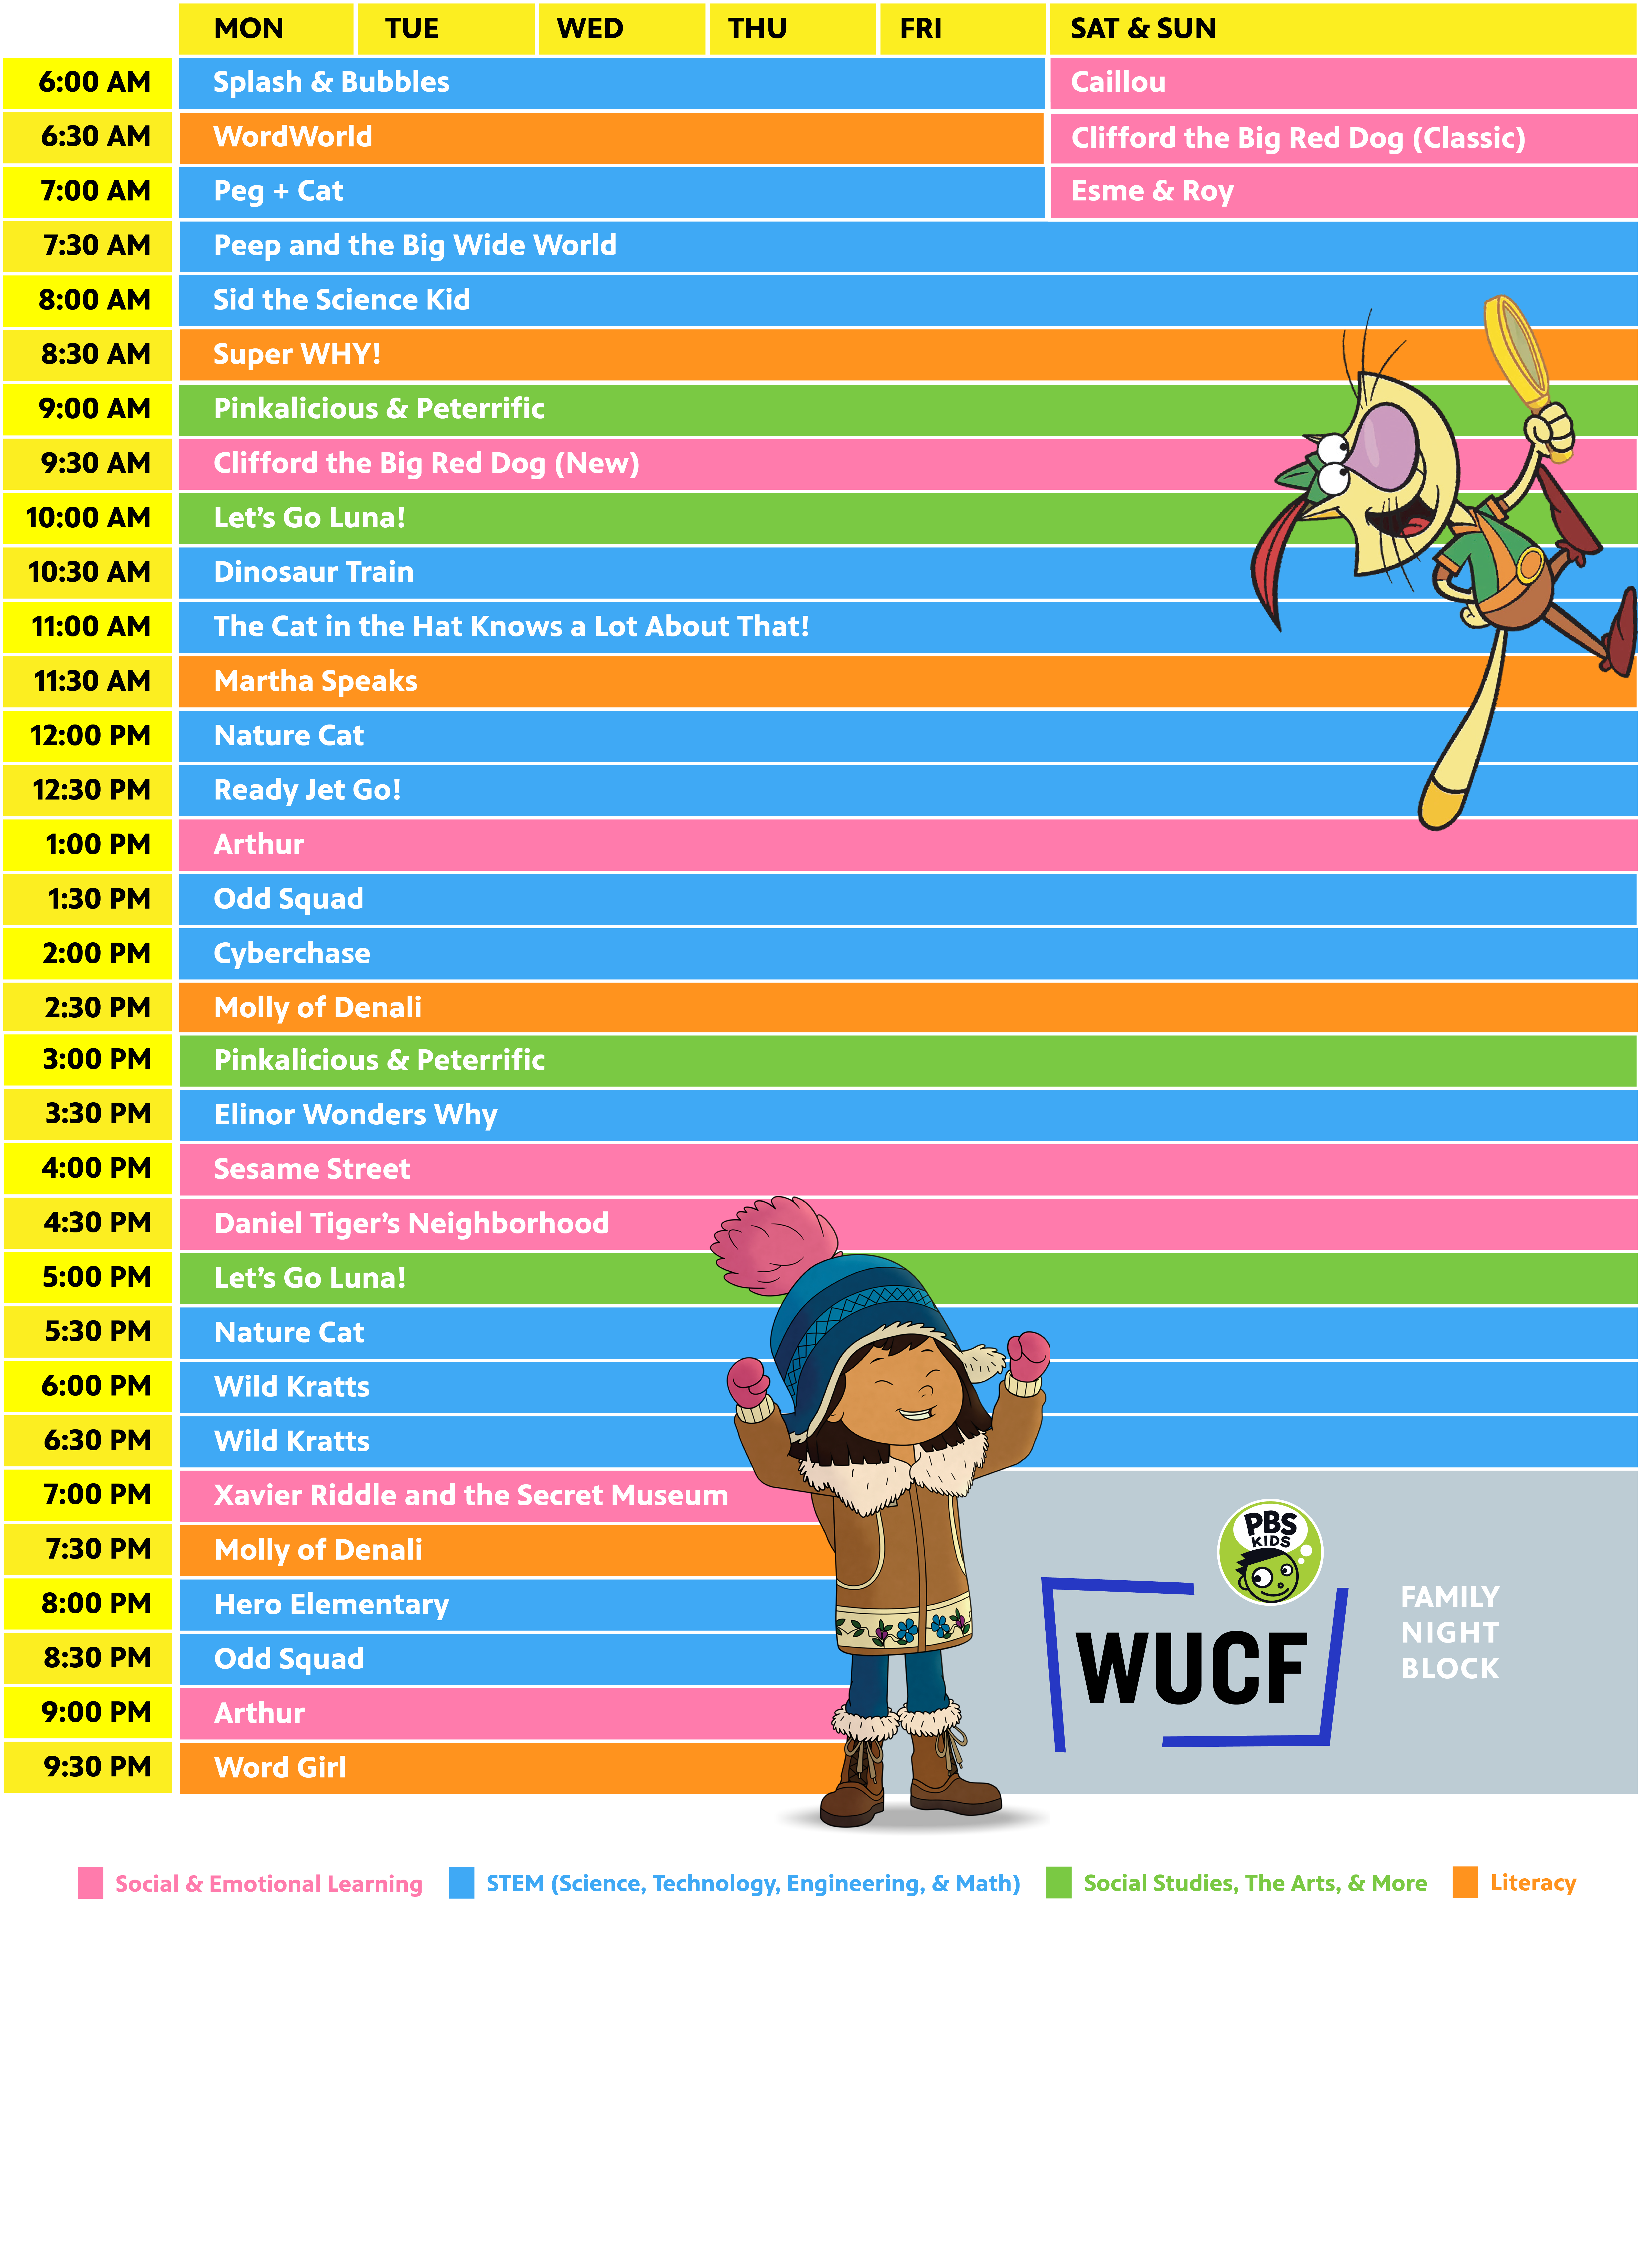 WUCF 24/7 Kids Scheduled 2019